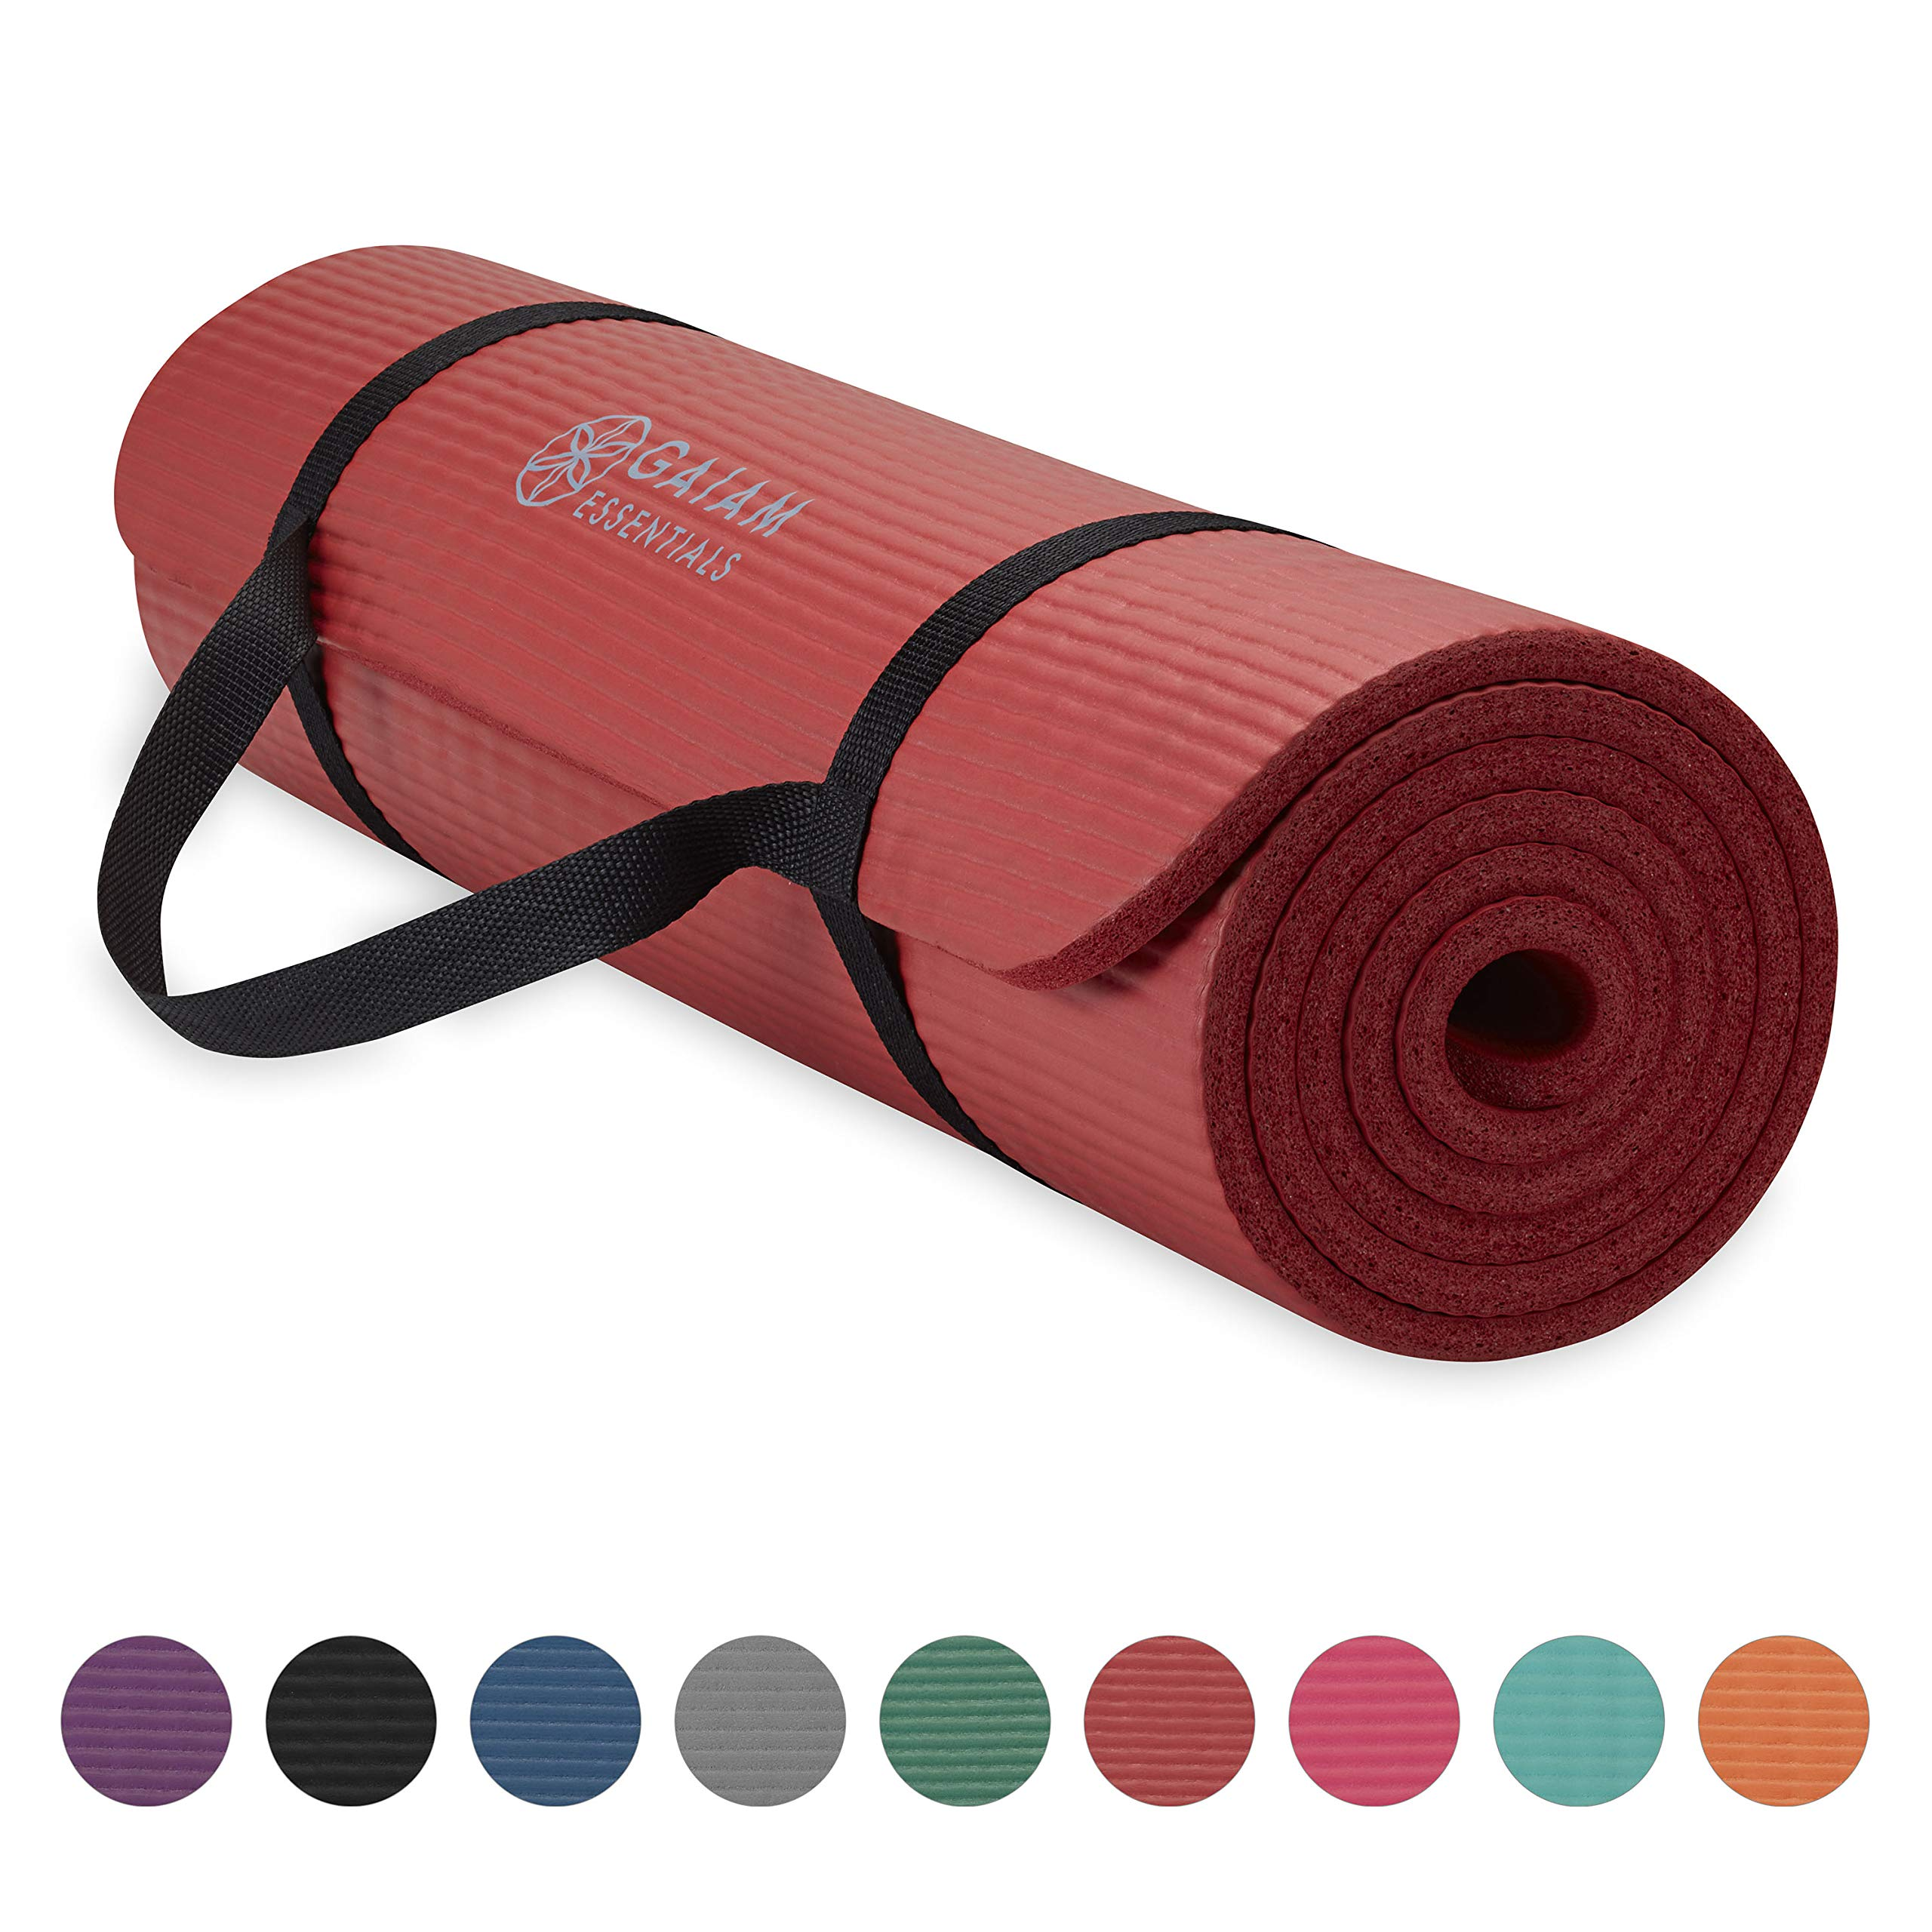 Gaiam Essentials Thick Yoga Mat Fitness & Exercise Mat with Easy-Cinch Yoga Mat Carrier Strap, Red, 72''L x 24''W x 2/5 Inch Thick